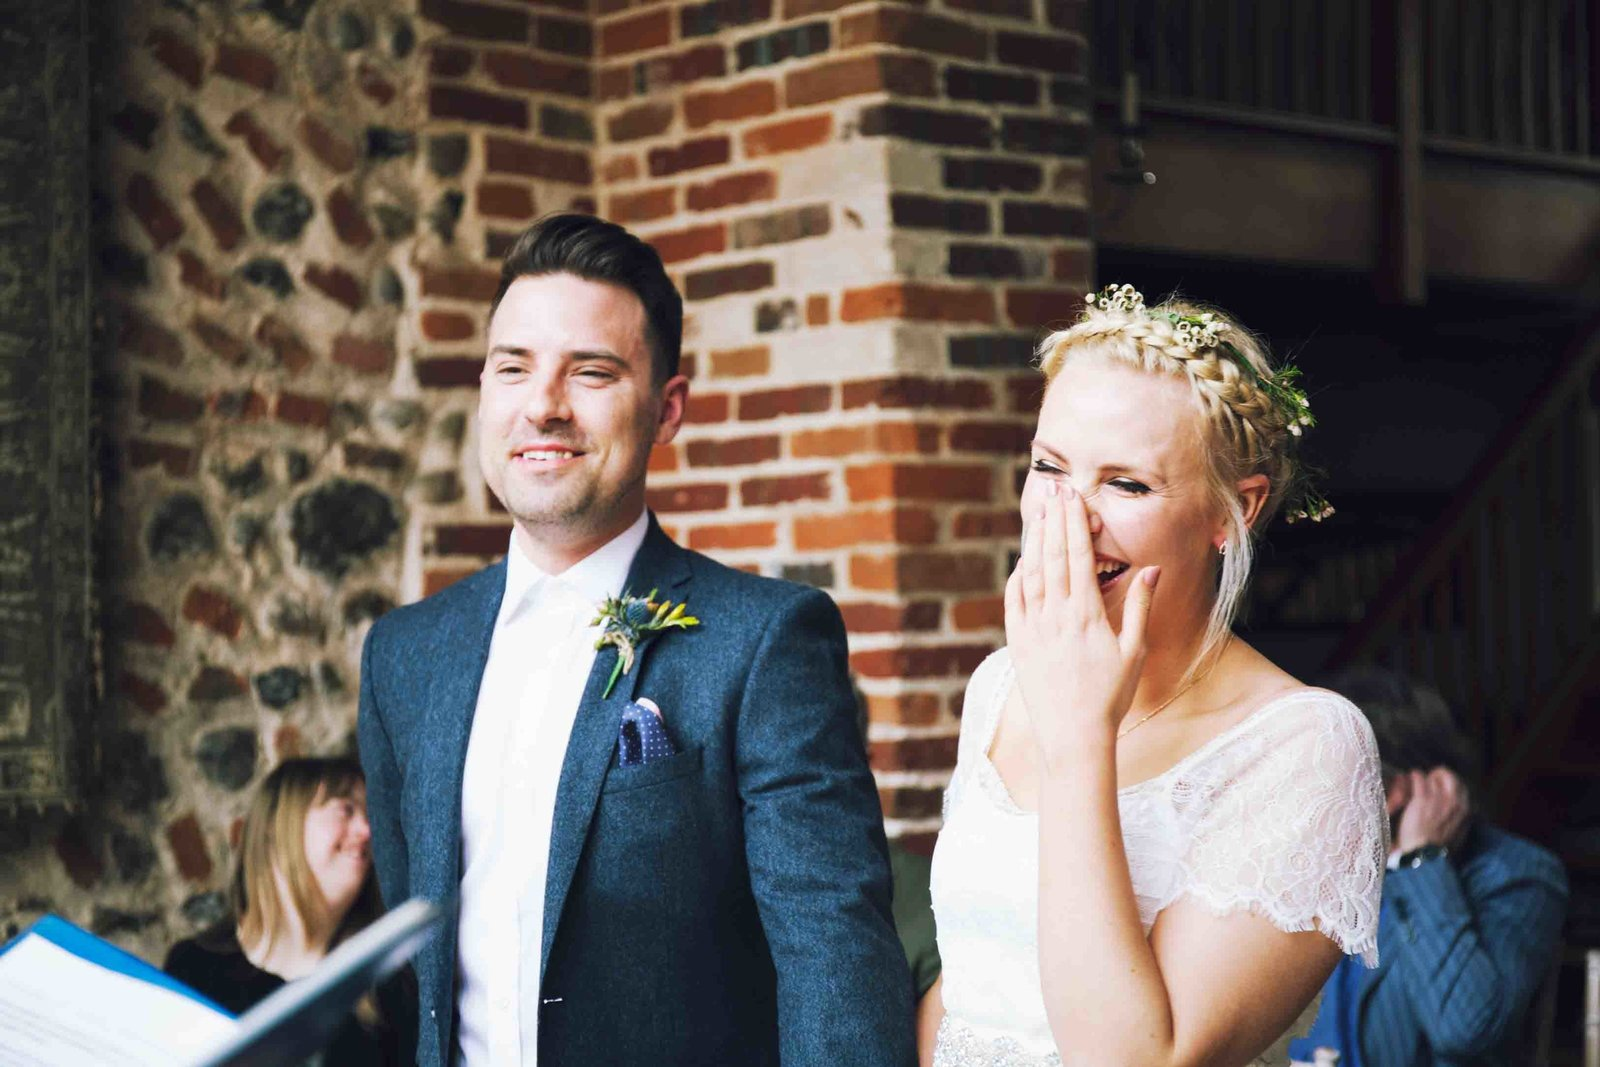 Relaxed laughing bride and groom during their ceremony vows  at Chaucer Barn wedding in Norfolk